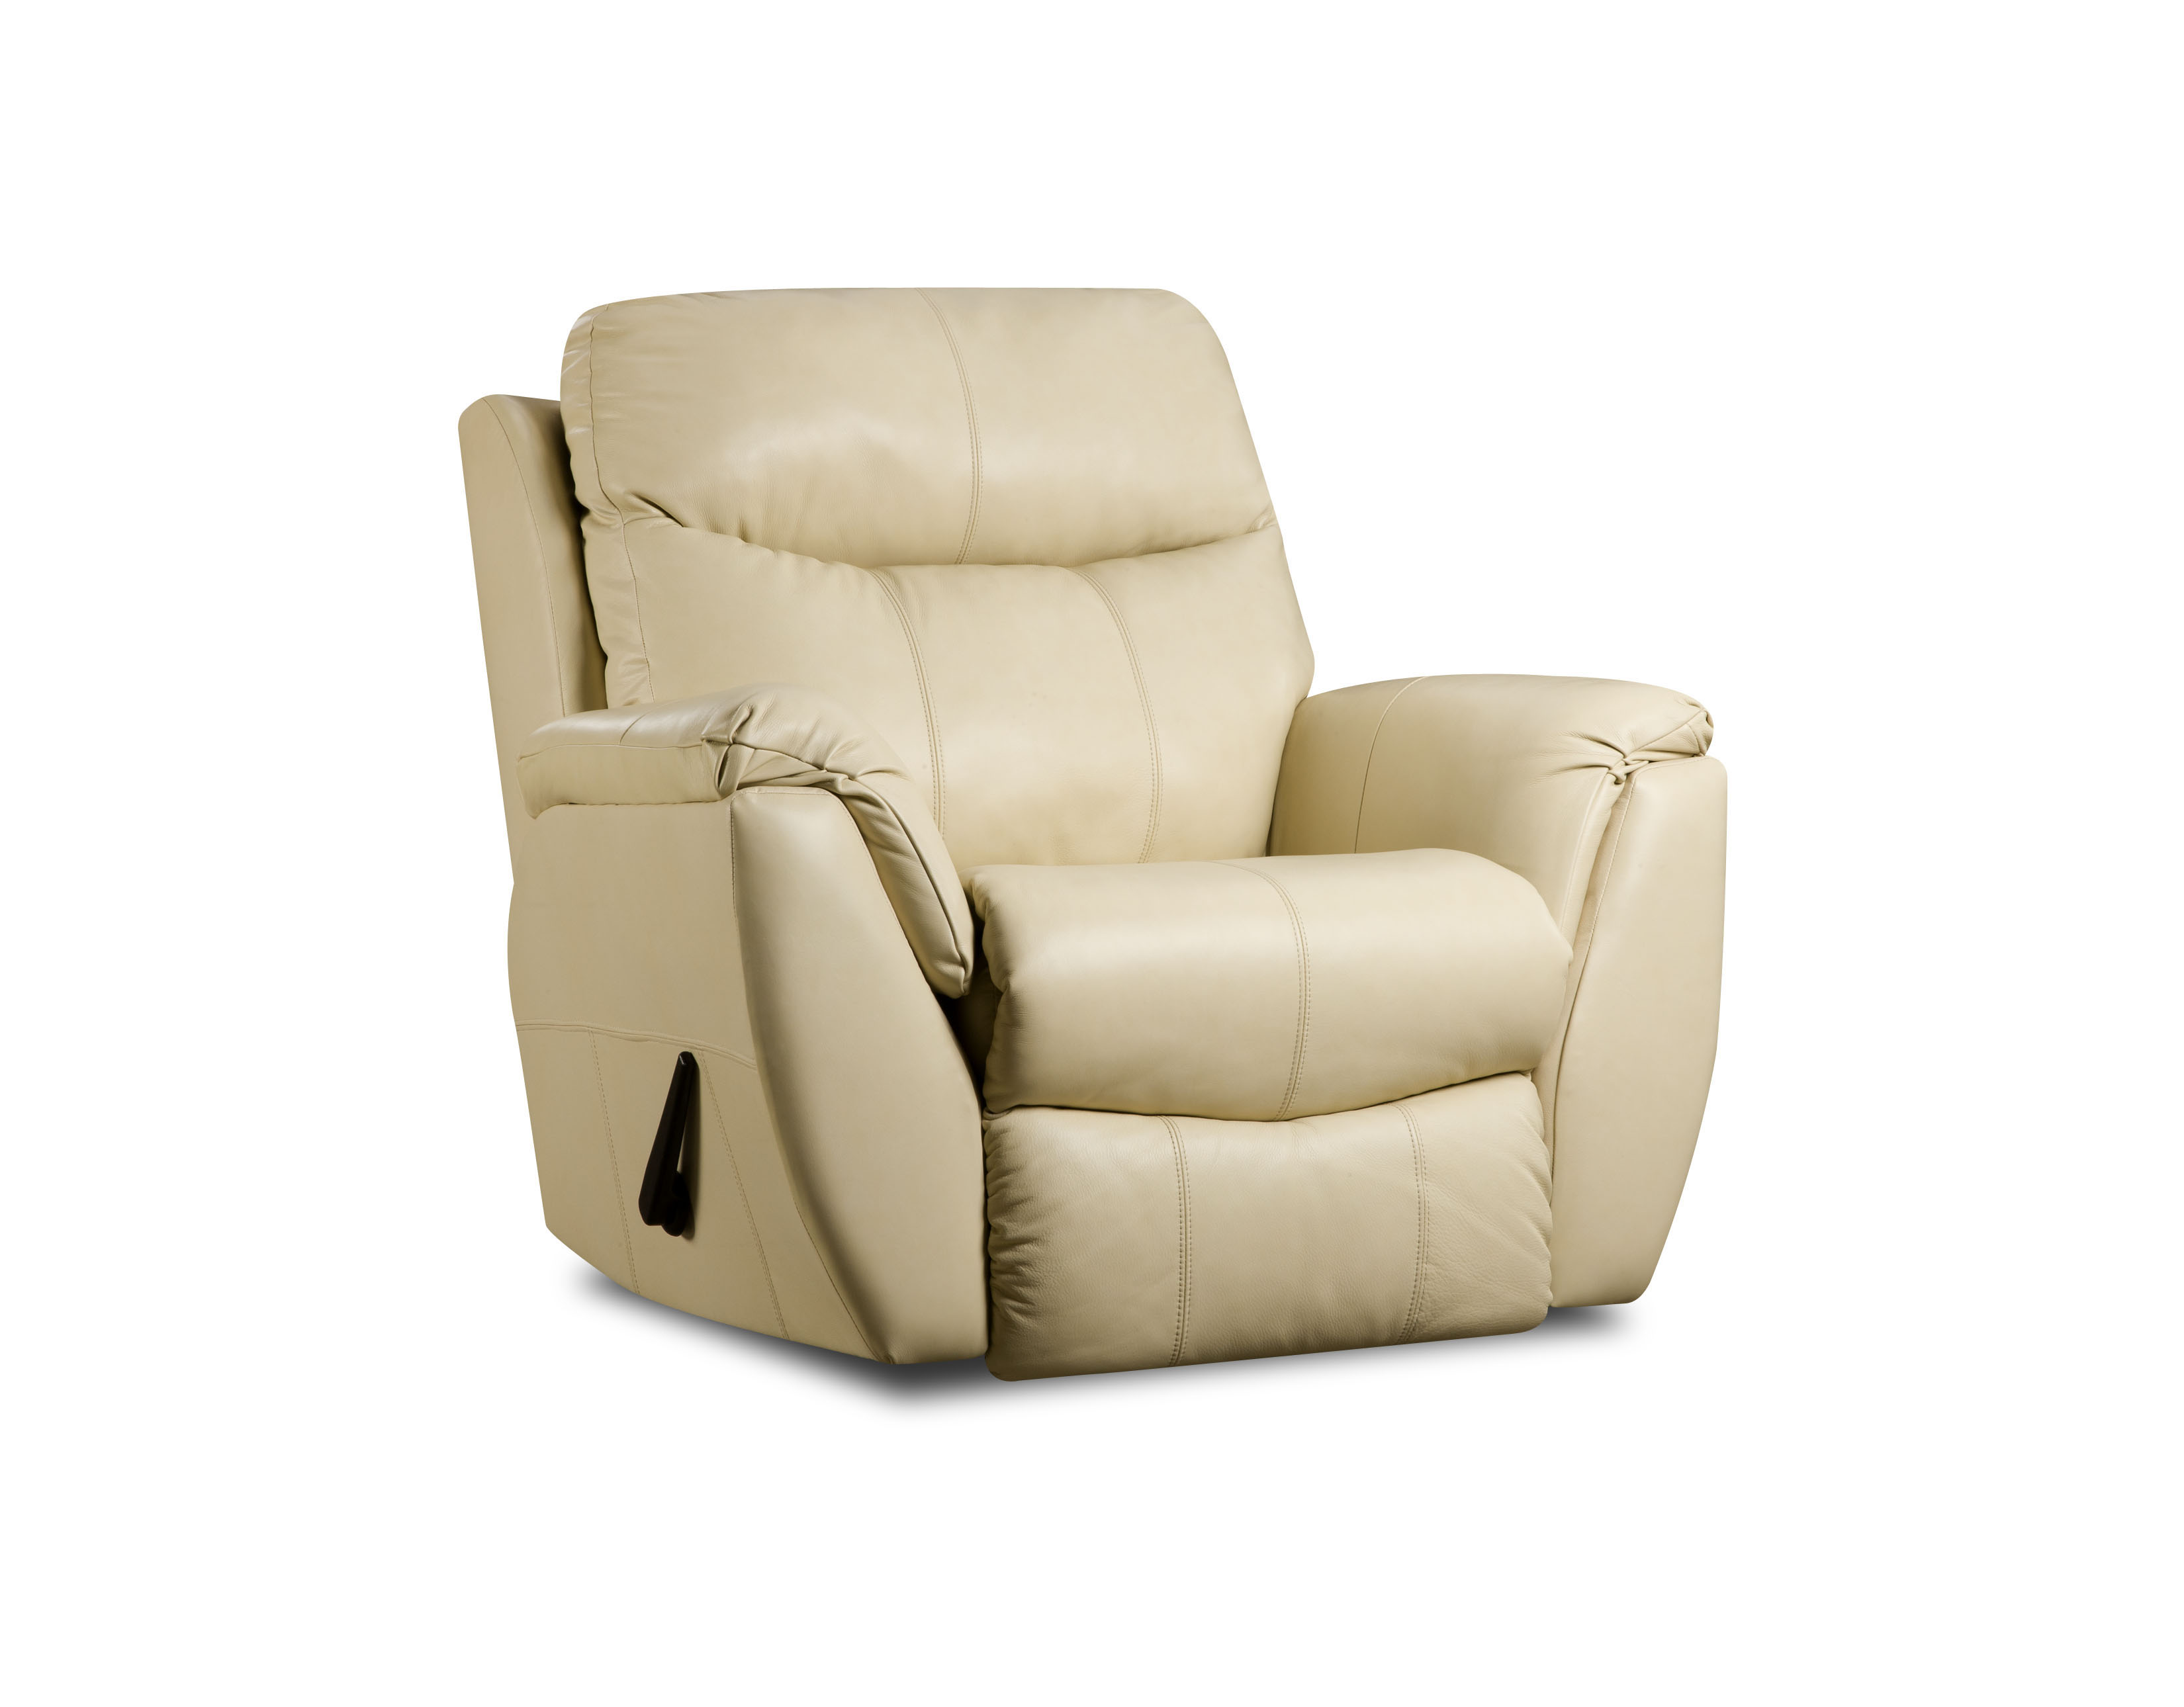 Southern motion recliner 28 images southern motion for Furniture r us markham il